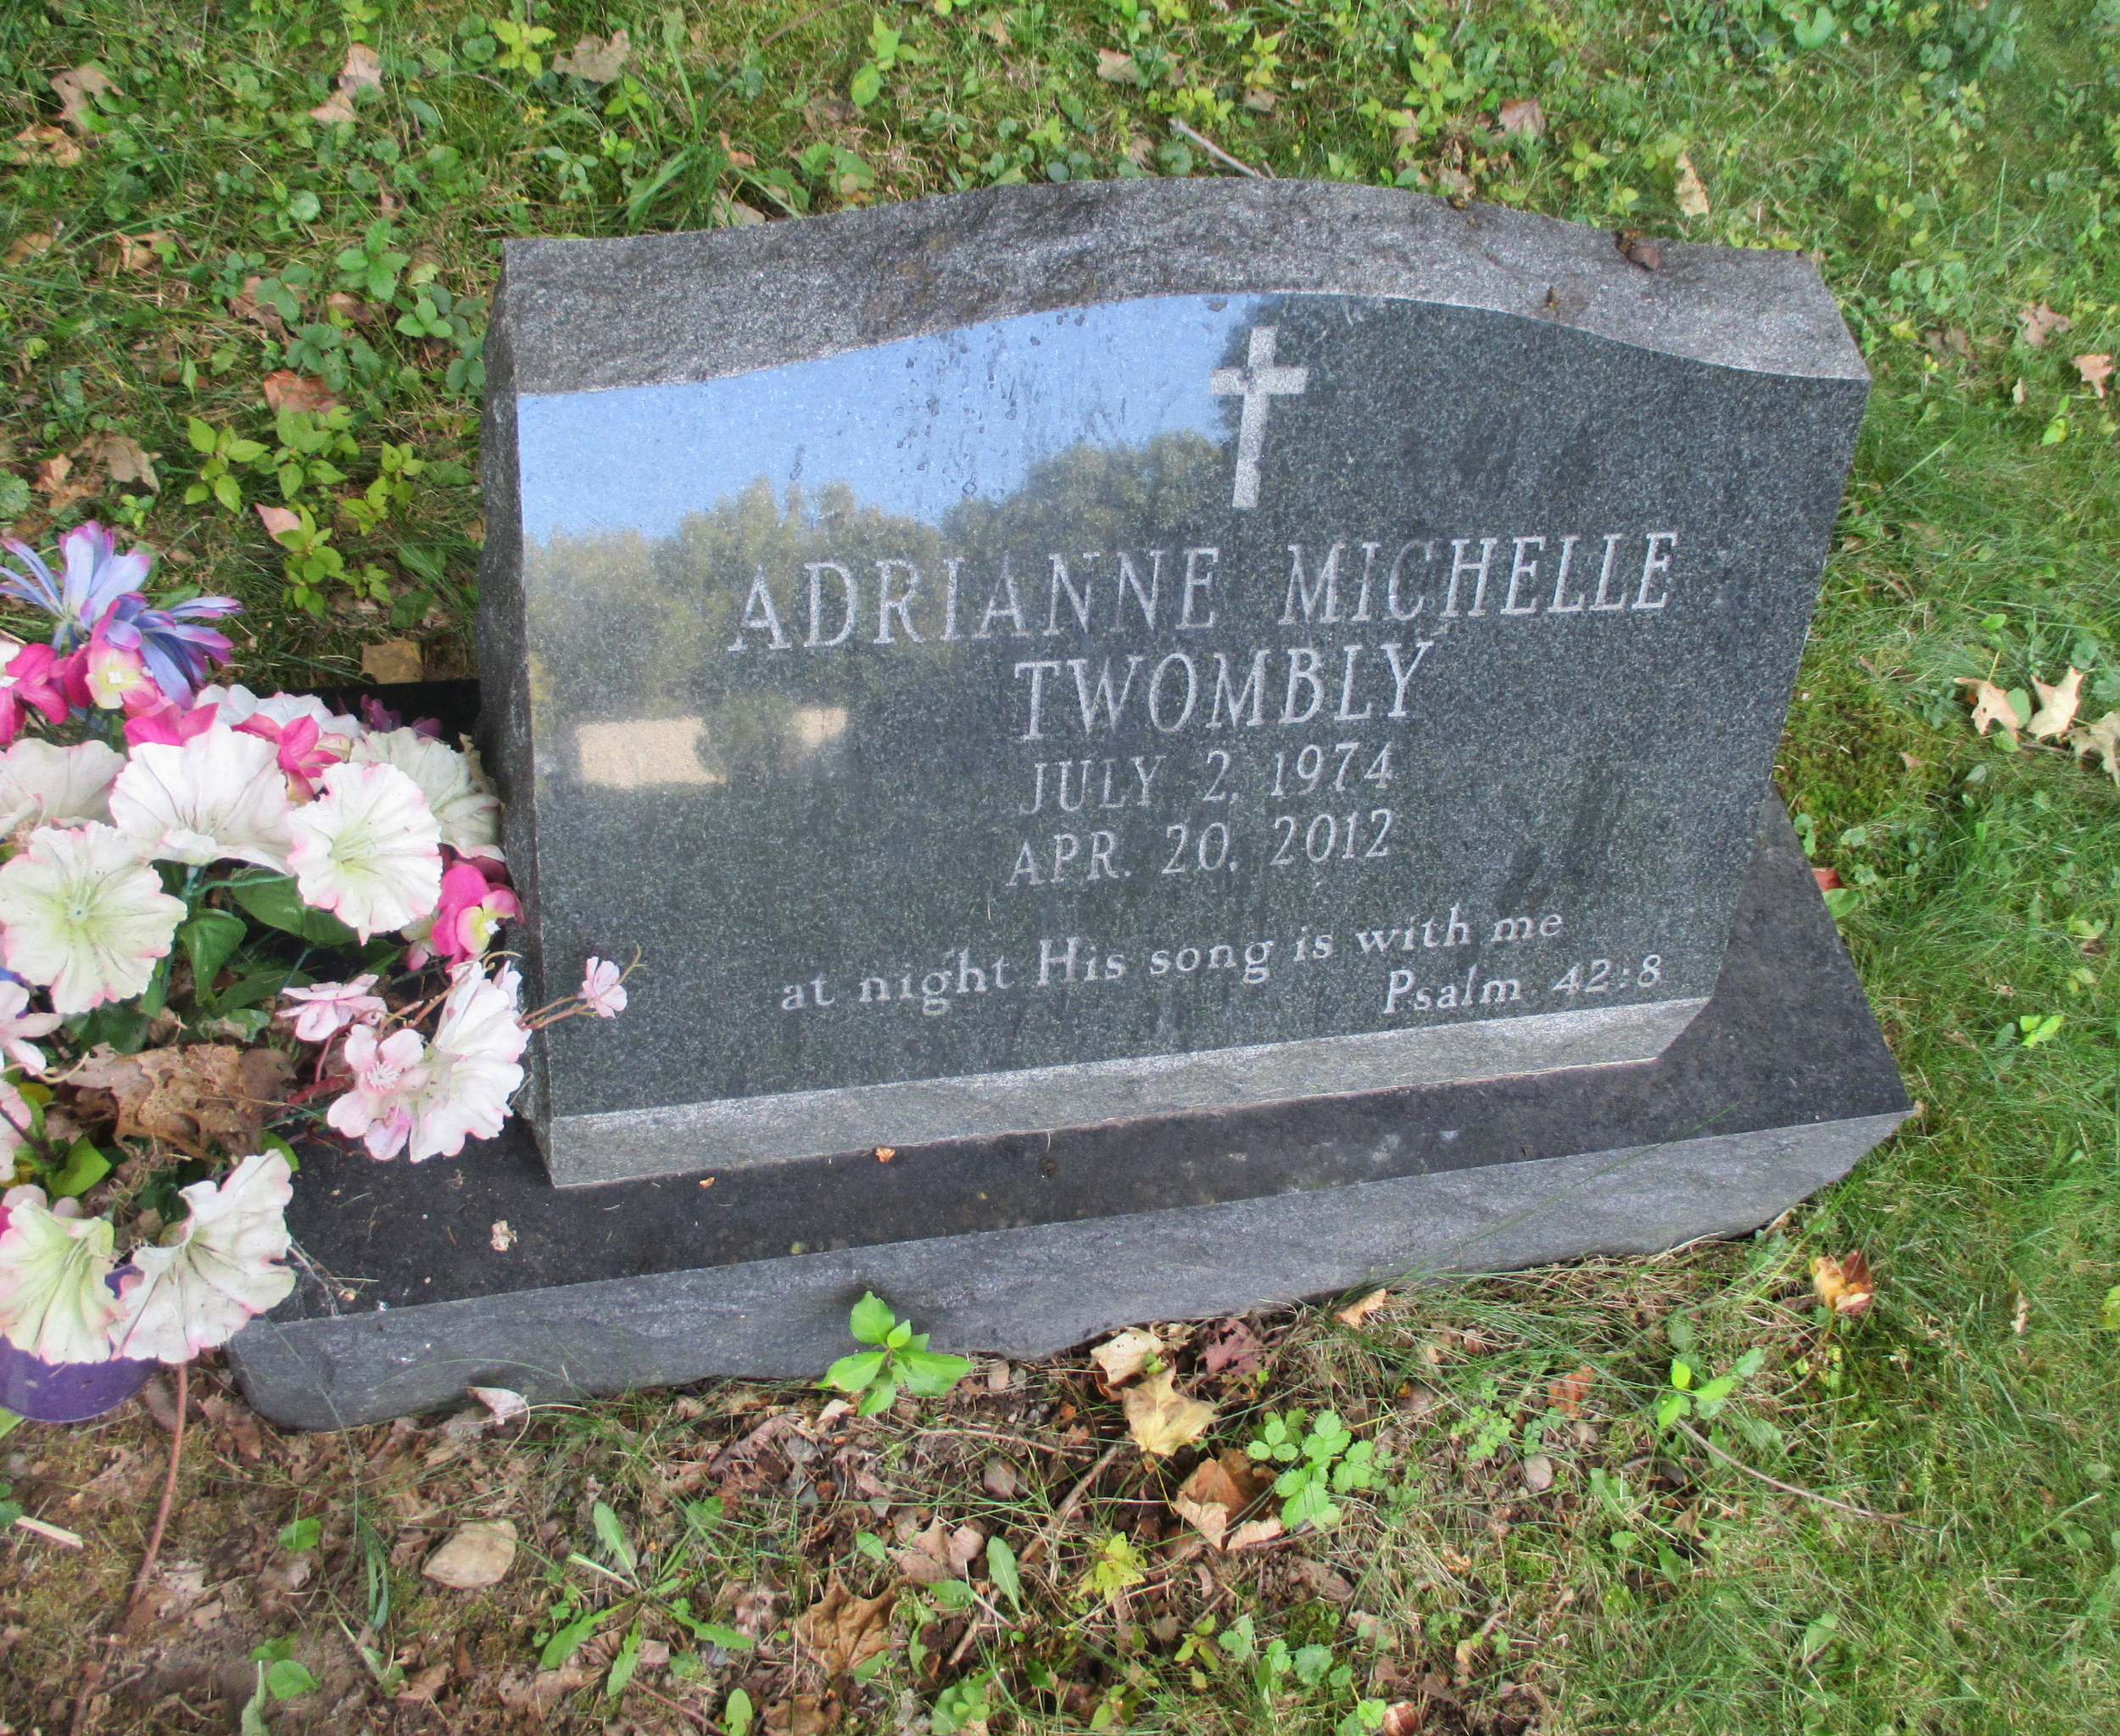 Adrianne Michelle Twombly